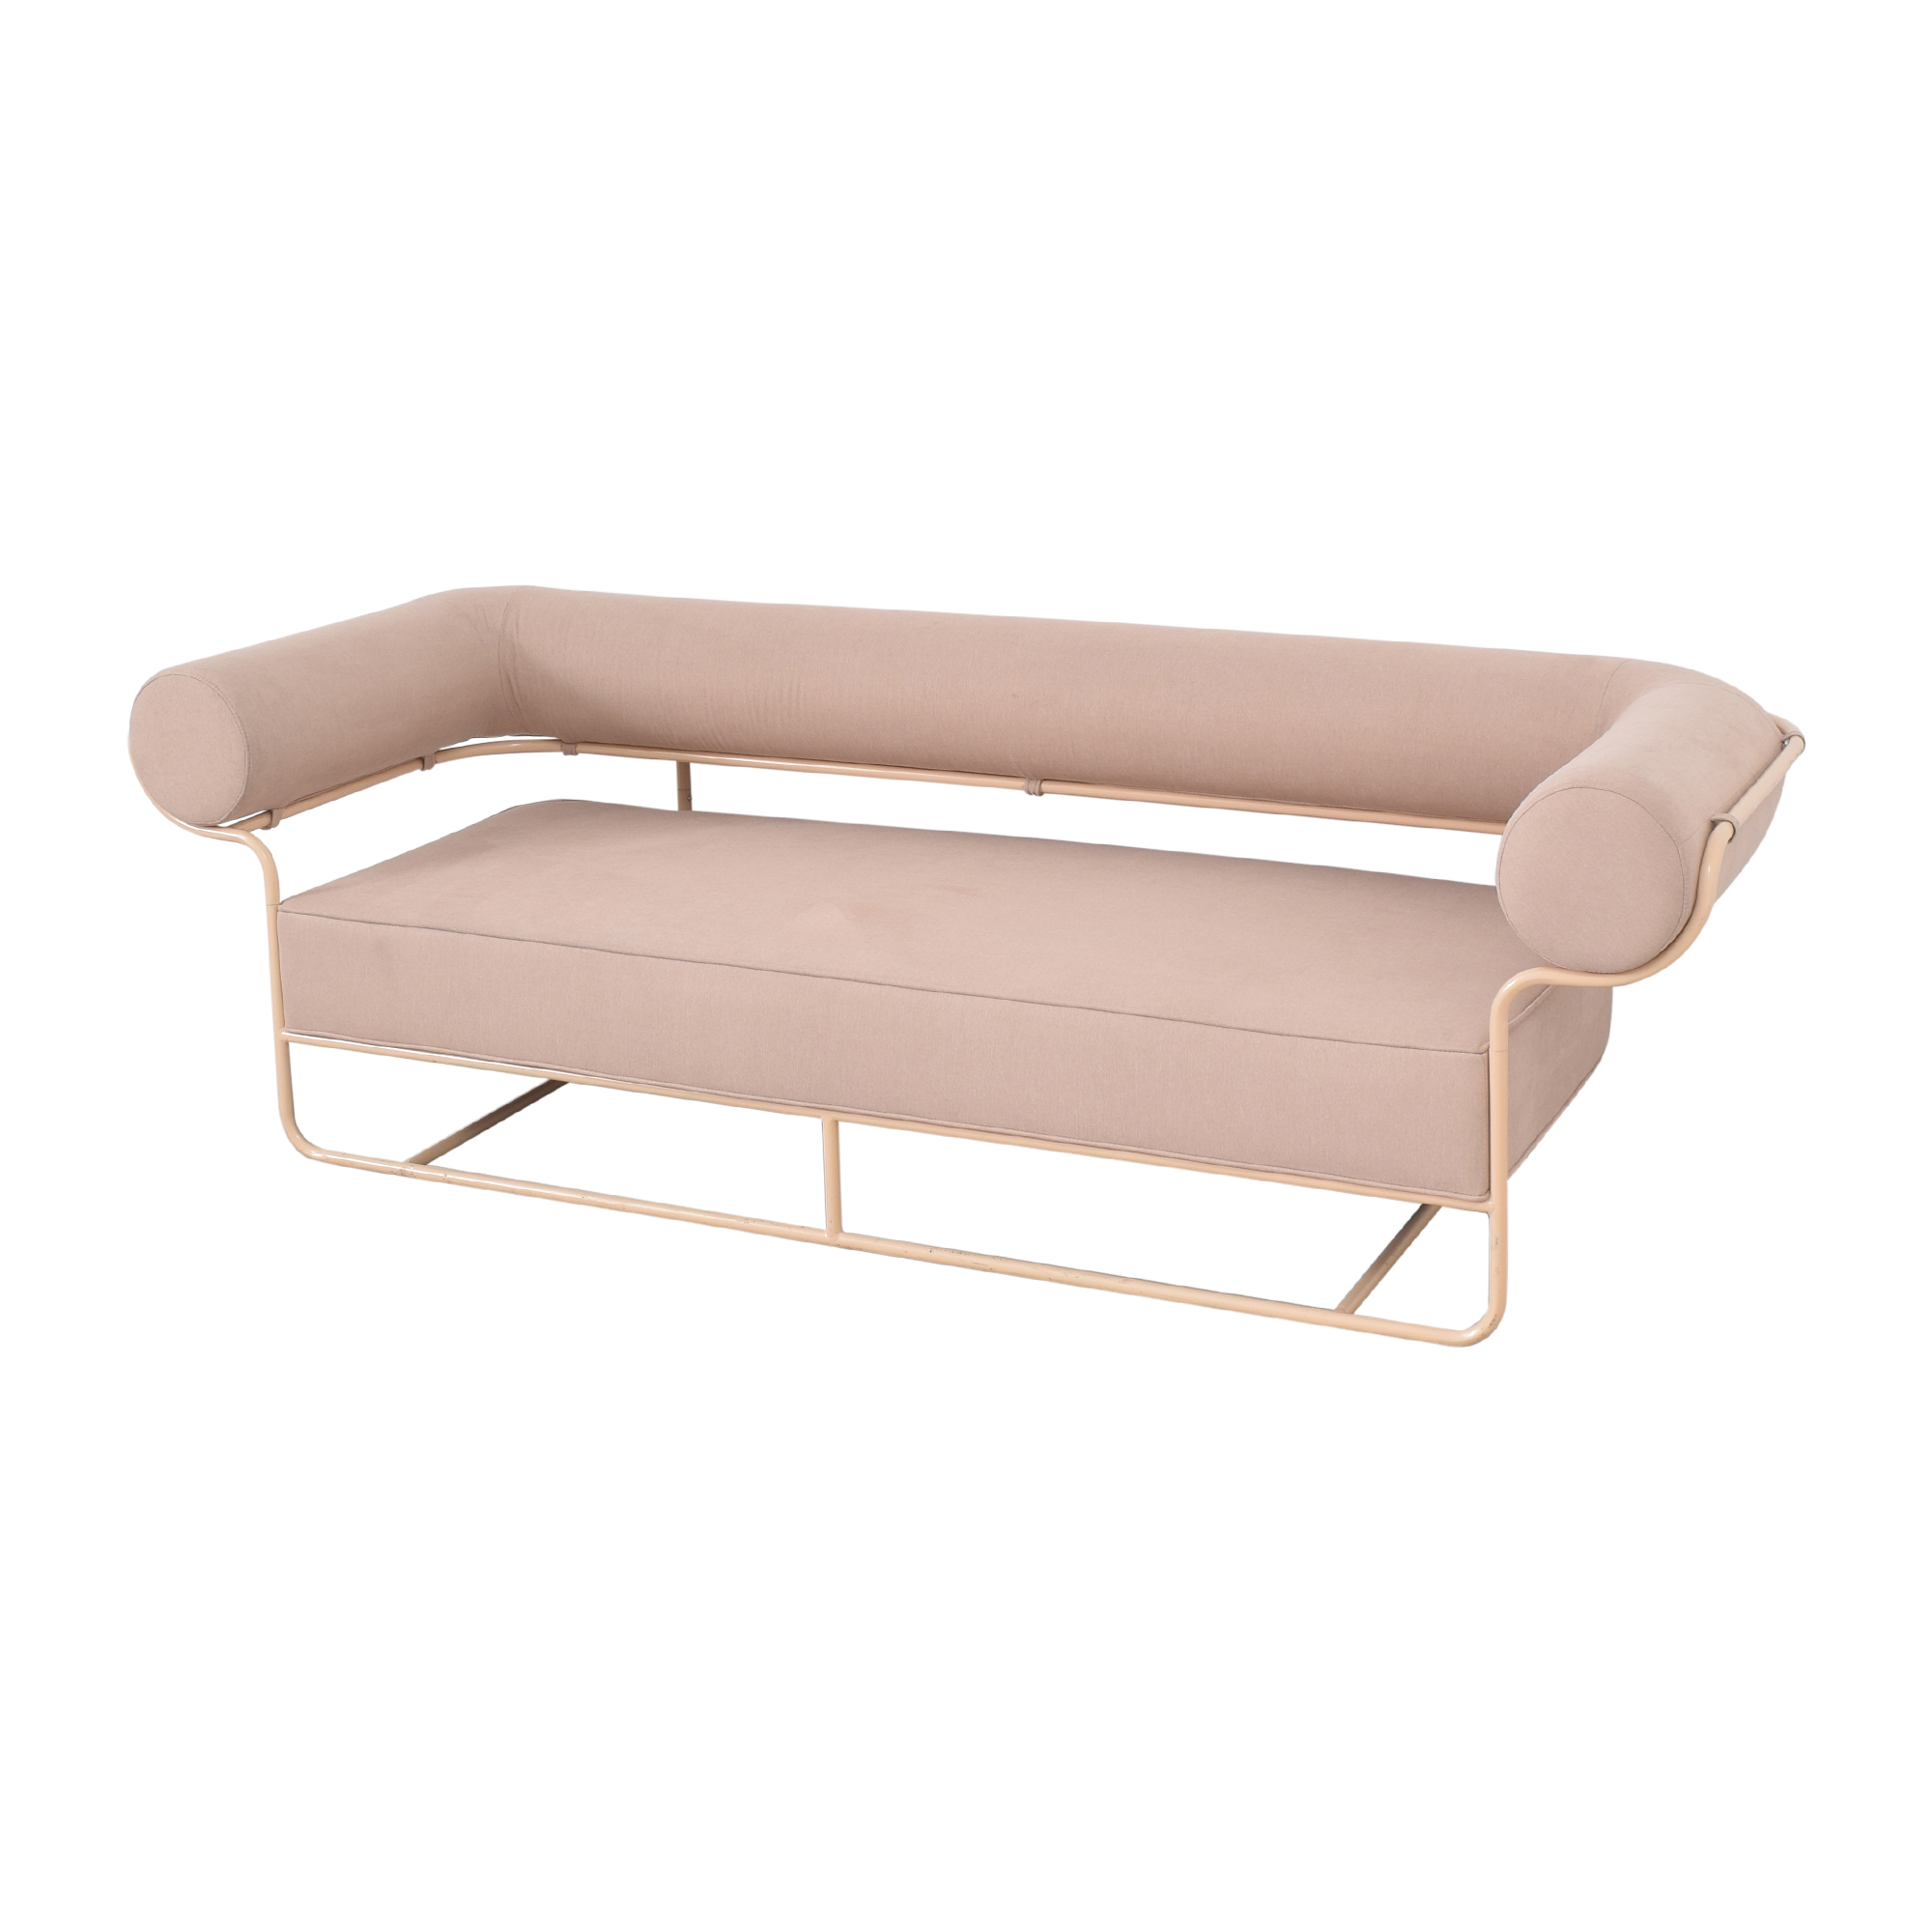 buy Urban Outfitters Ollie Sofa Urban Outfitters Sofas